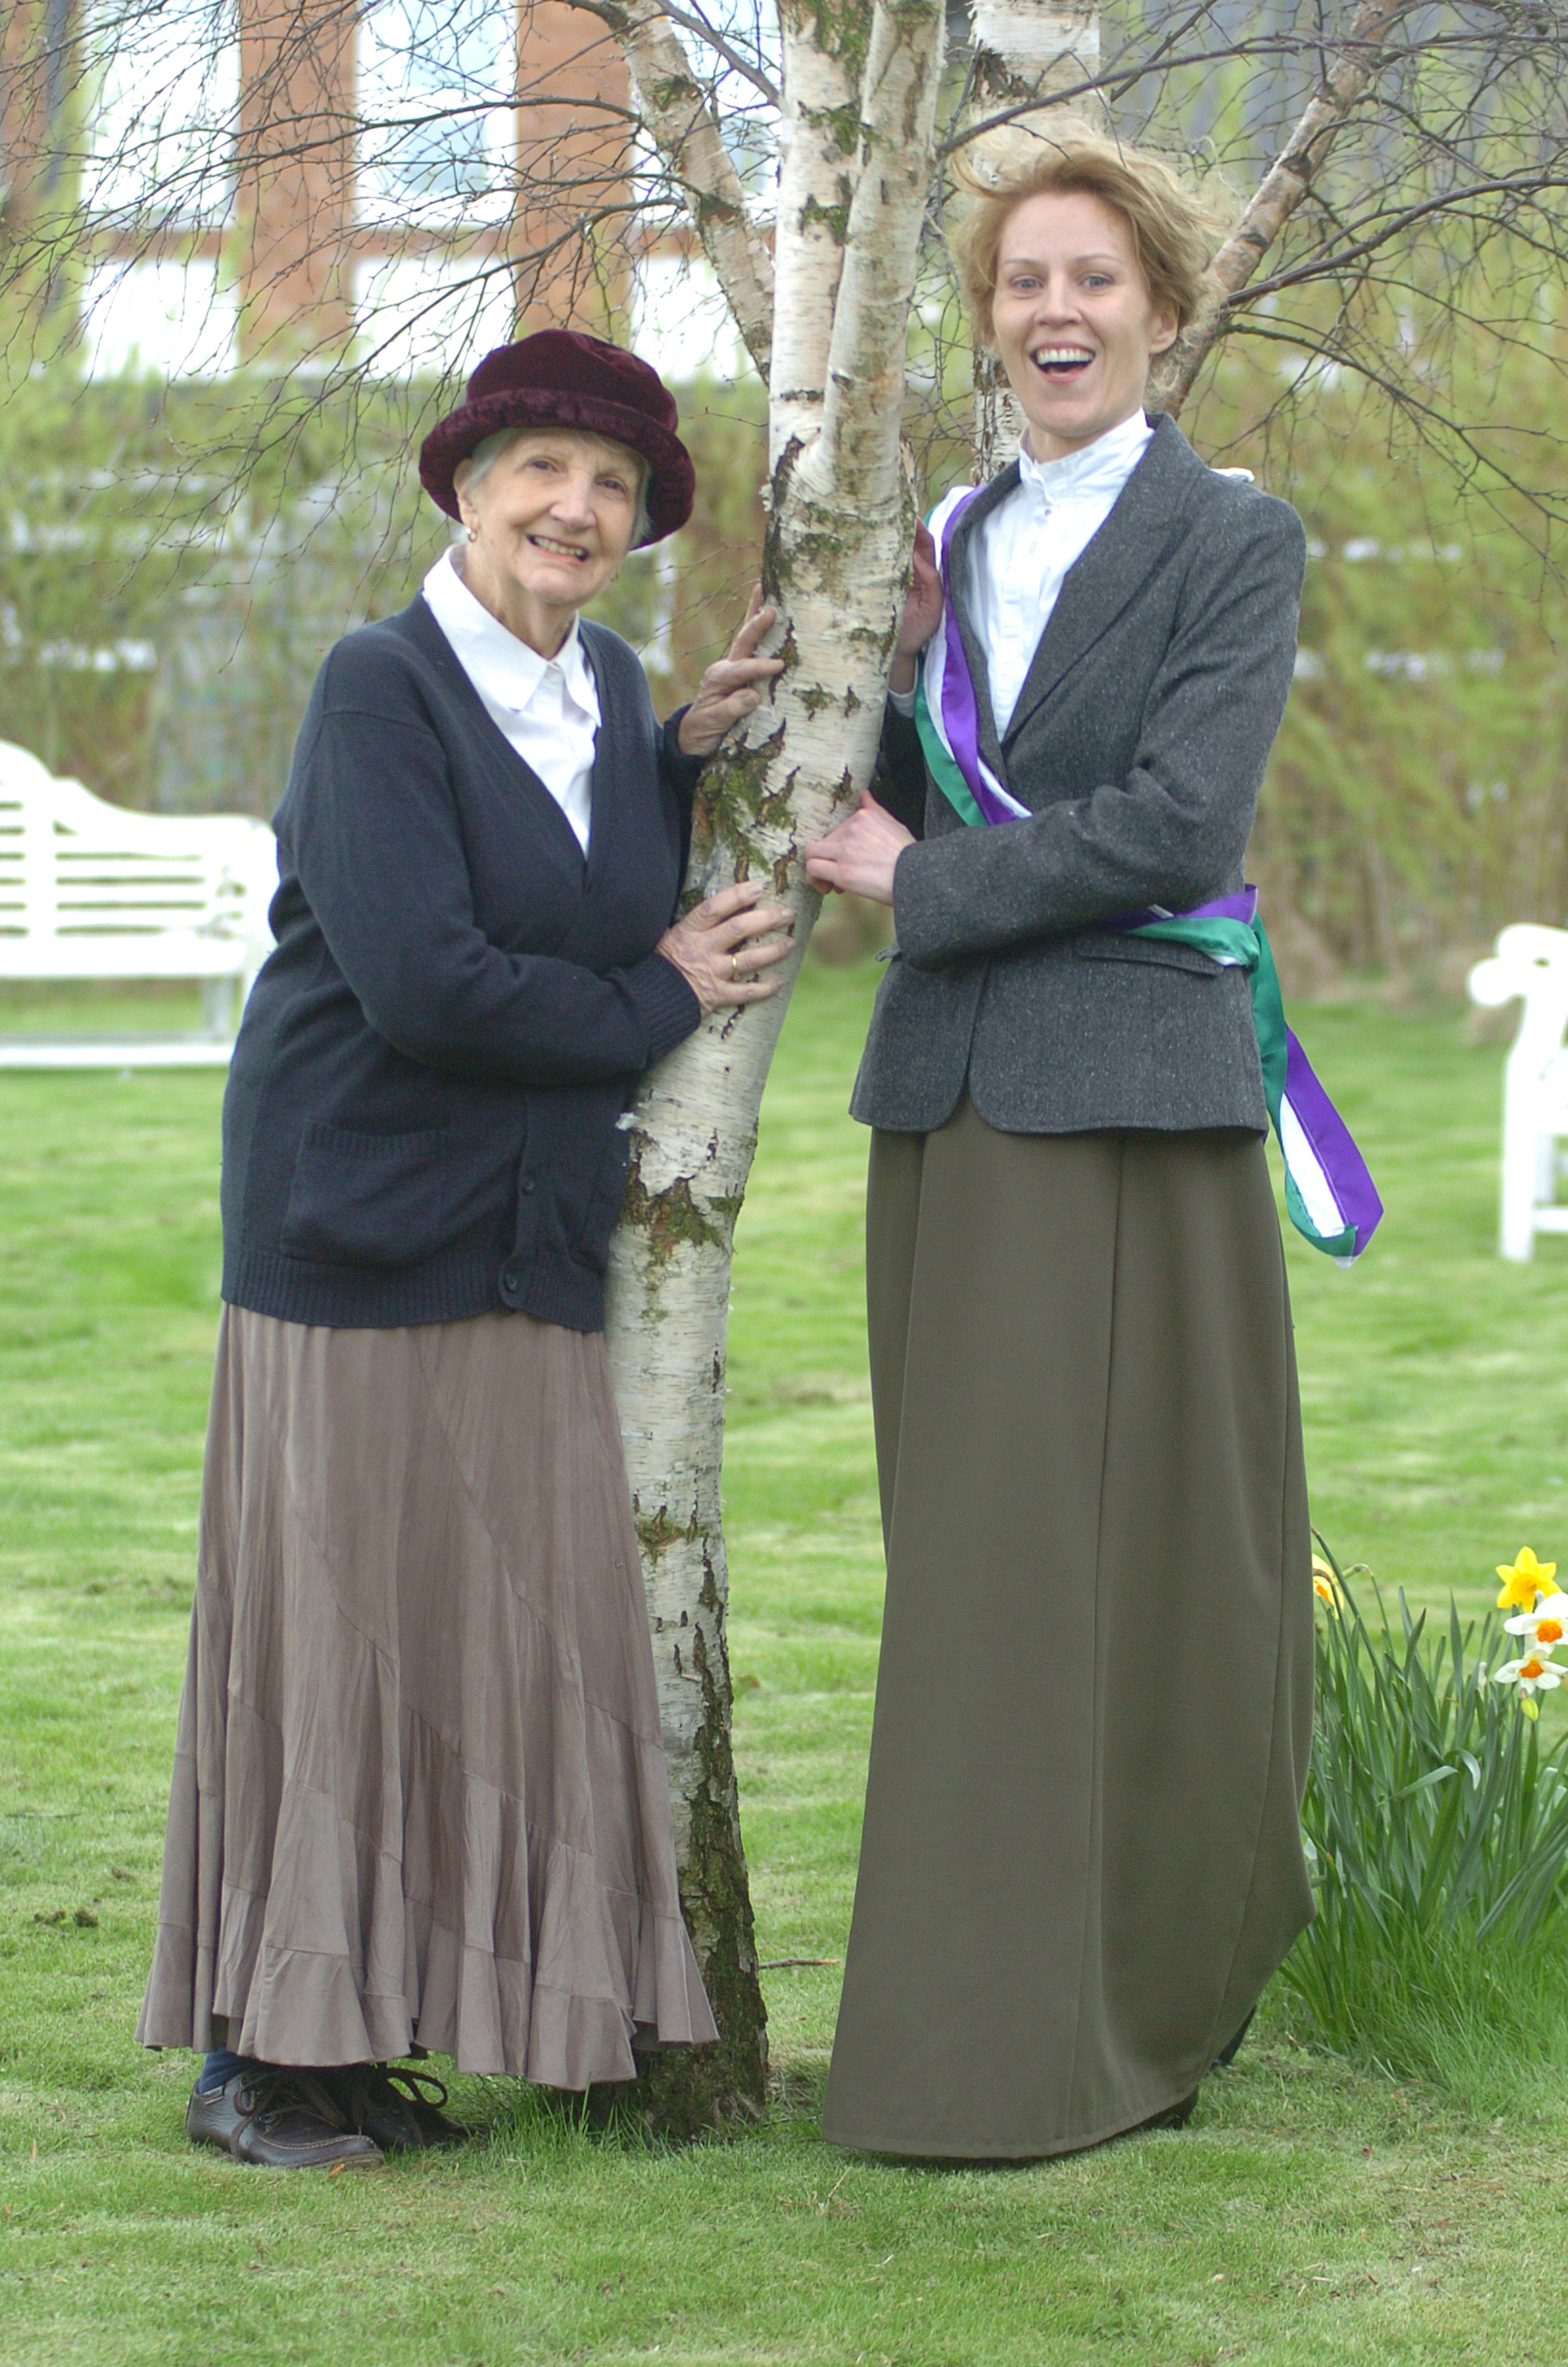 Kay Renner (Margaret Davison) Kate Willoughby (Emily Davison)_photo_Peter McCartney_Morpeth Herald 2013